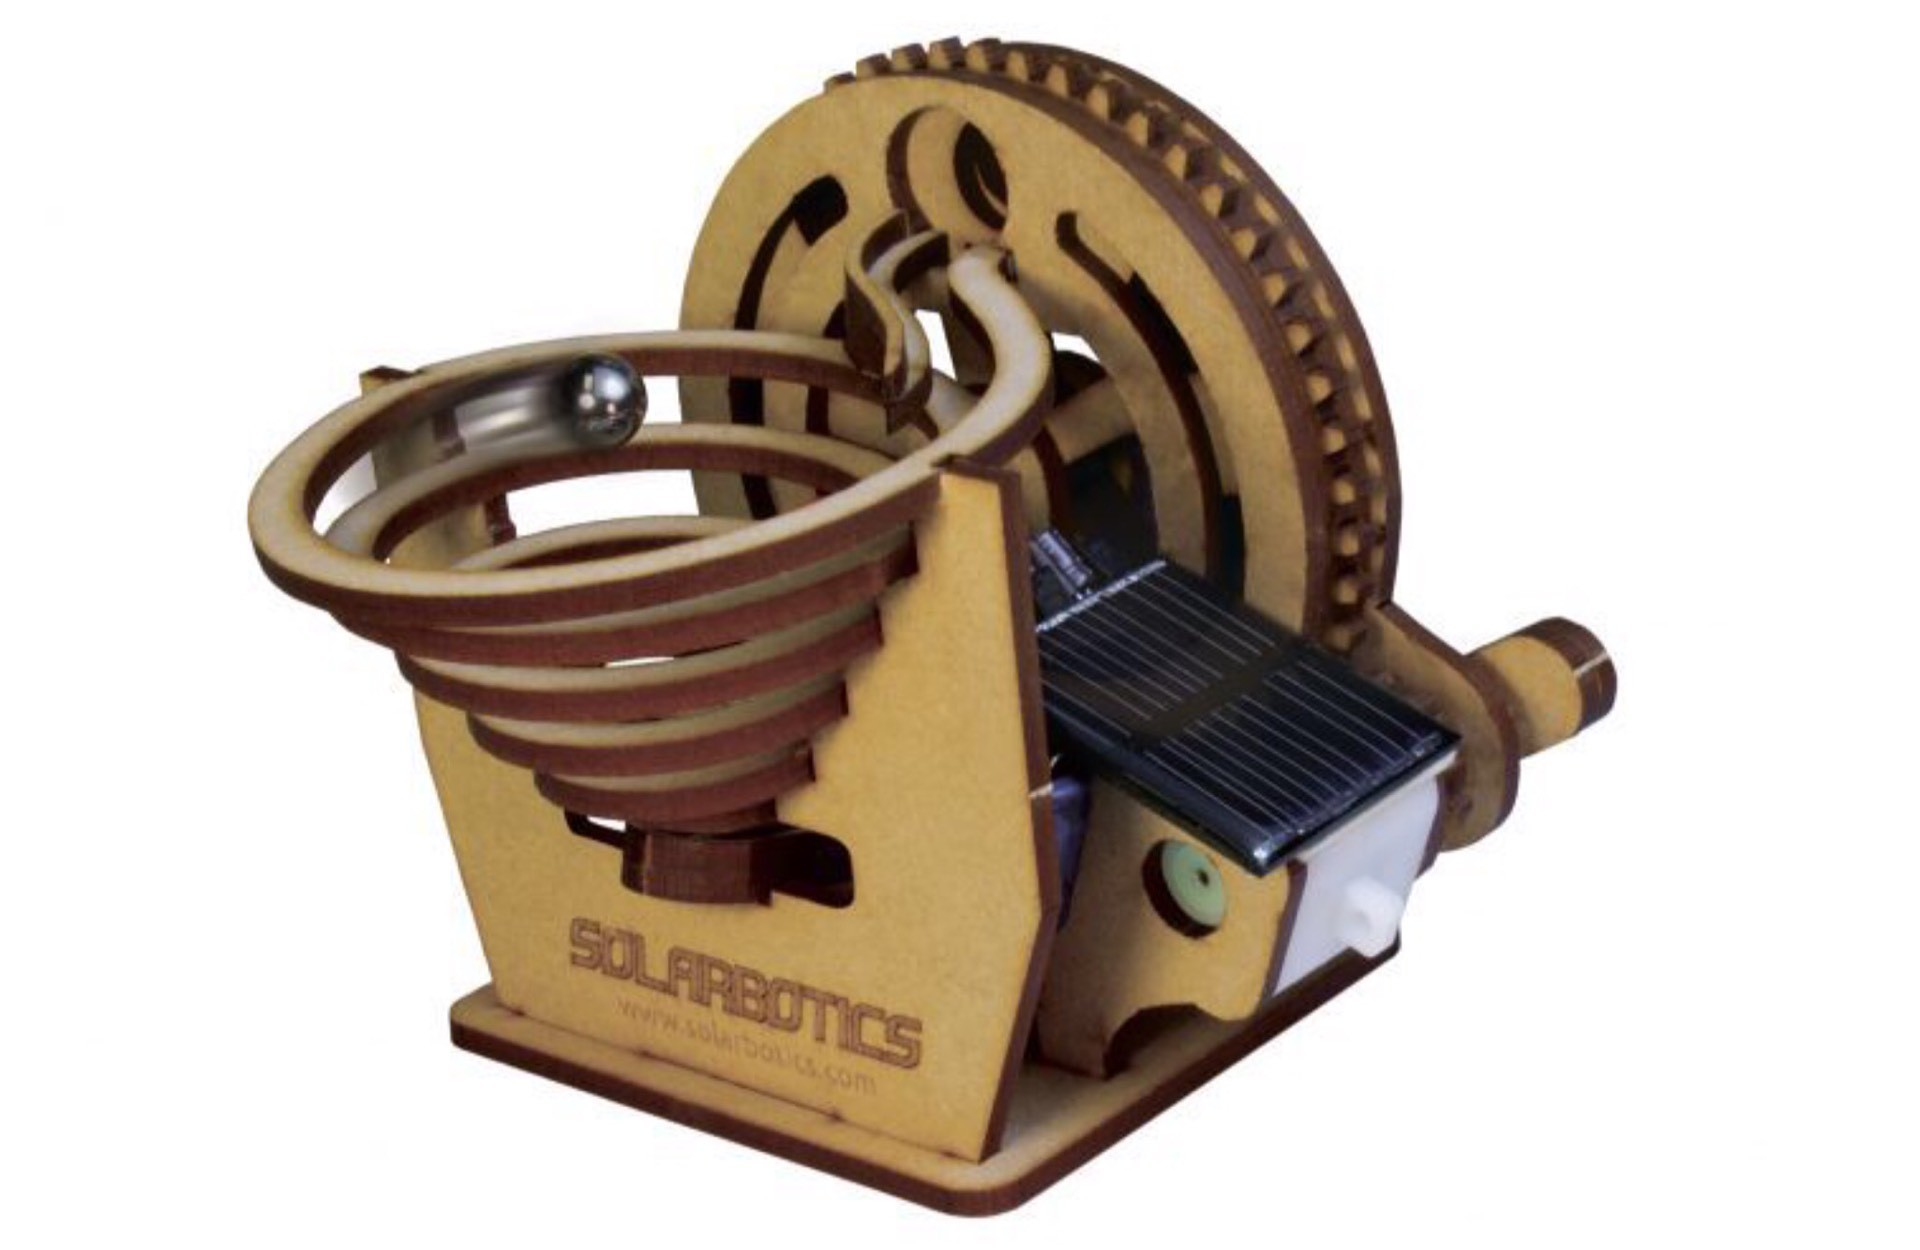 The Solar Marble Machine by Solarbotics. ($43)